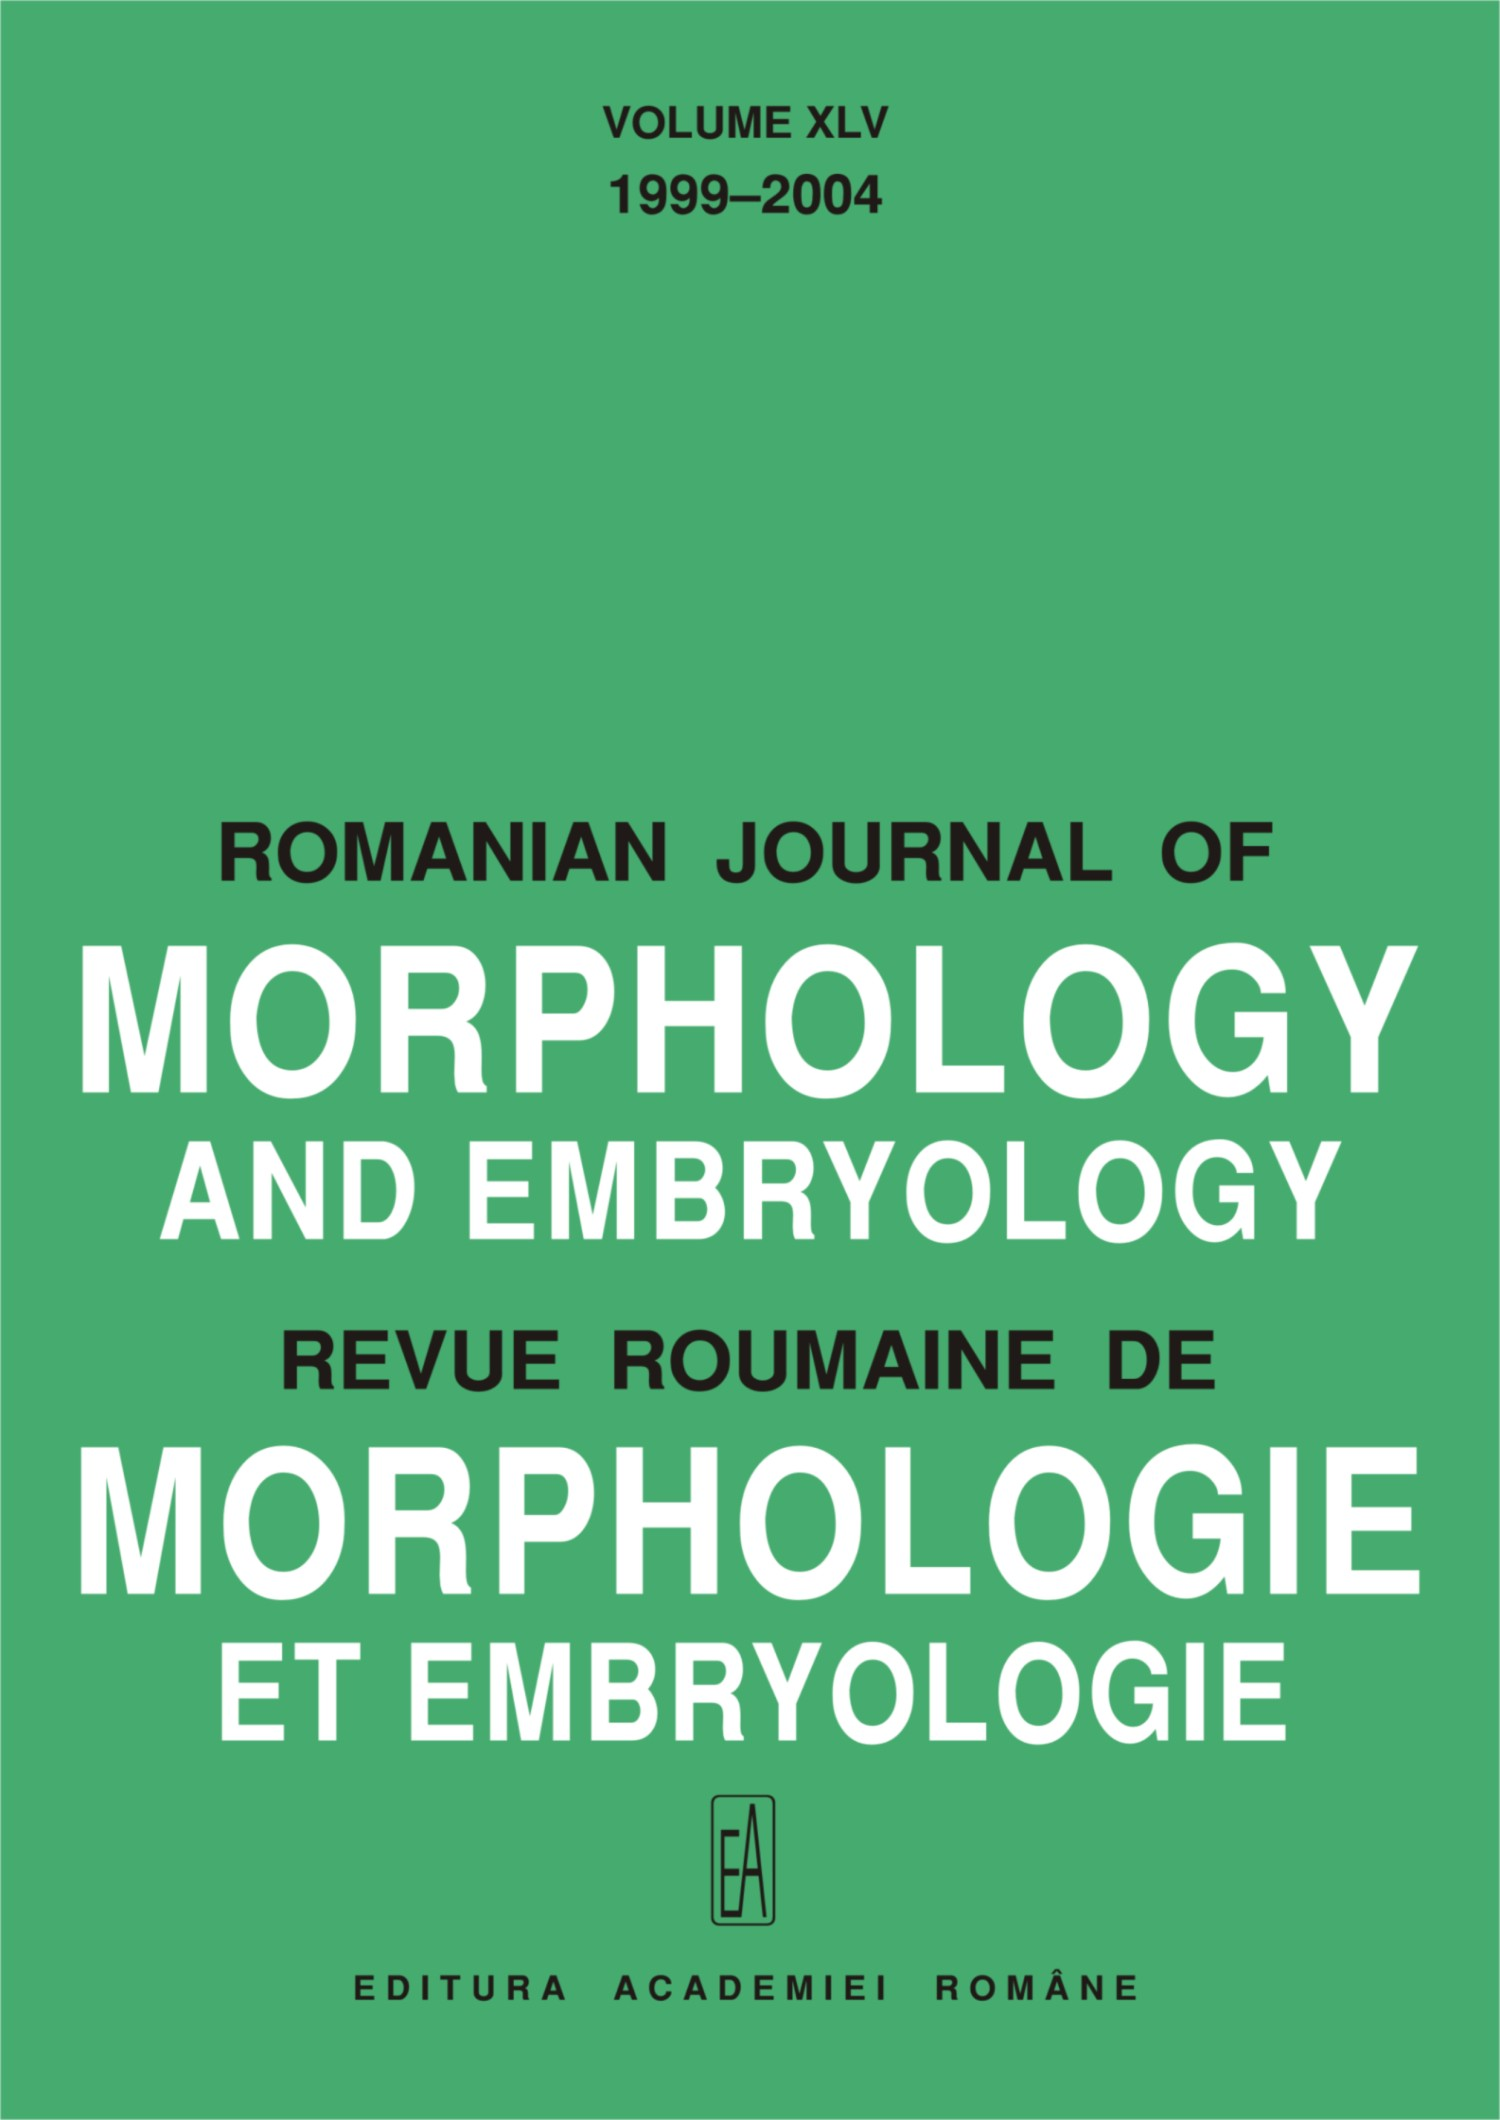 Romanian Journal of Morphology and Embryology, vol. 45 no. CI, 2004